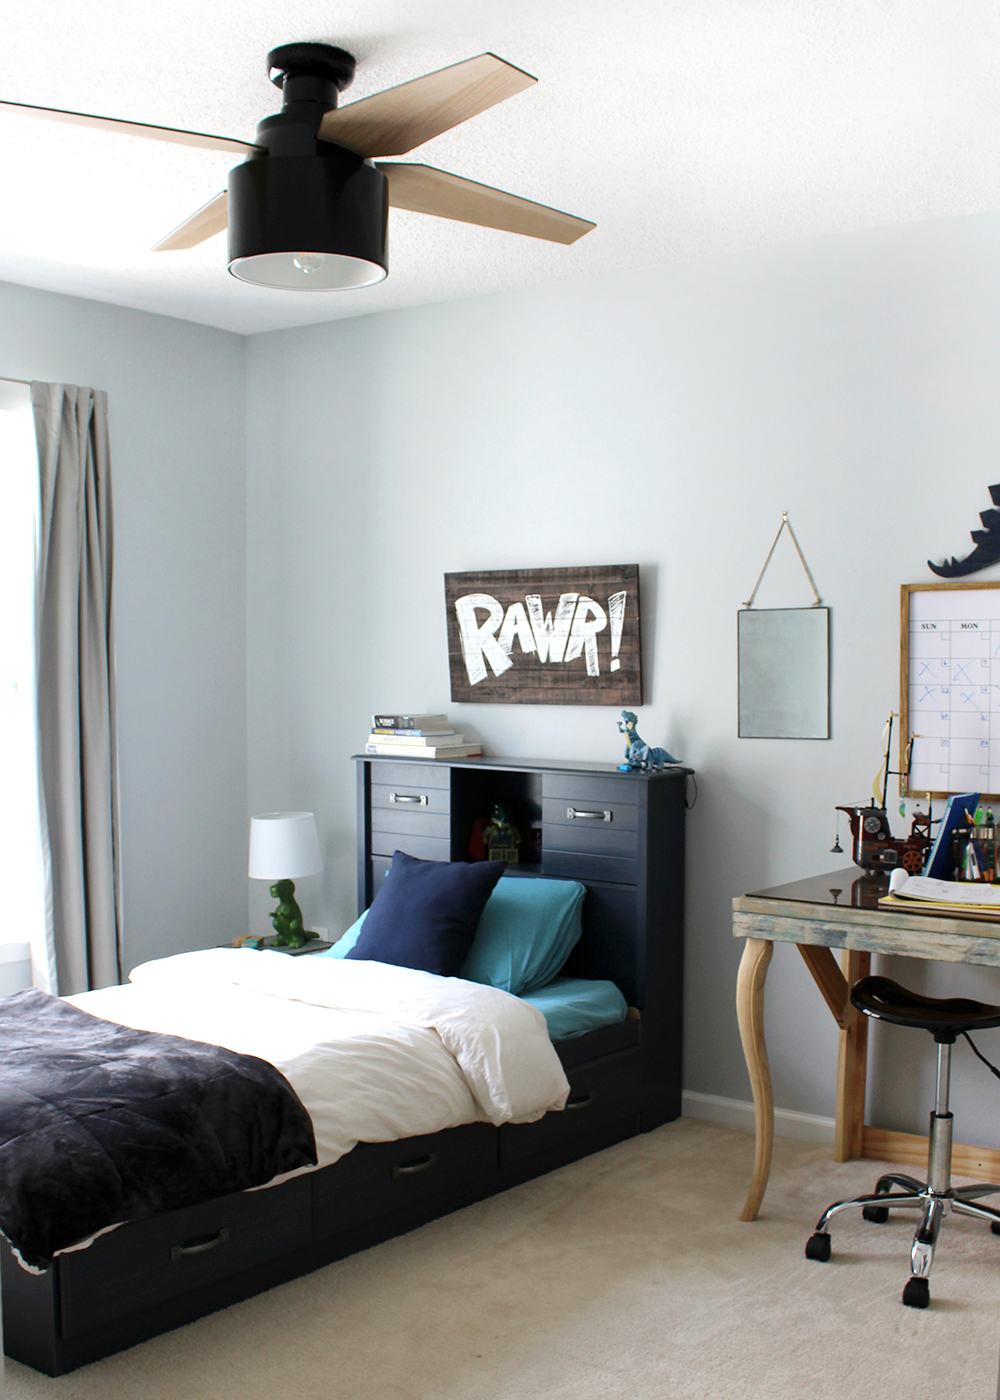 preteen boy room with blue walls and a modern black ceiling fan #kidsroom #kidsbedroom #teenroom #preteenroom